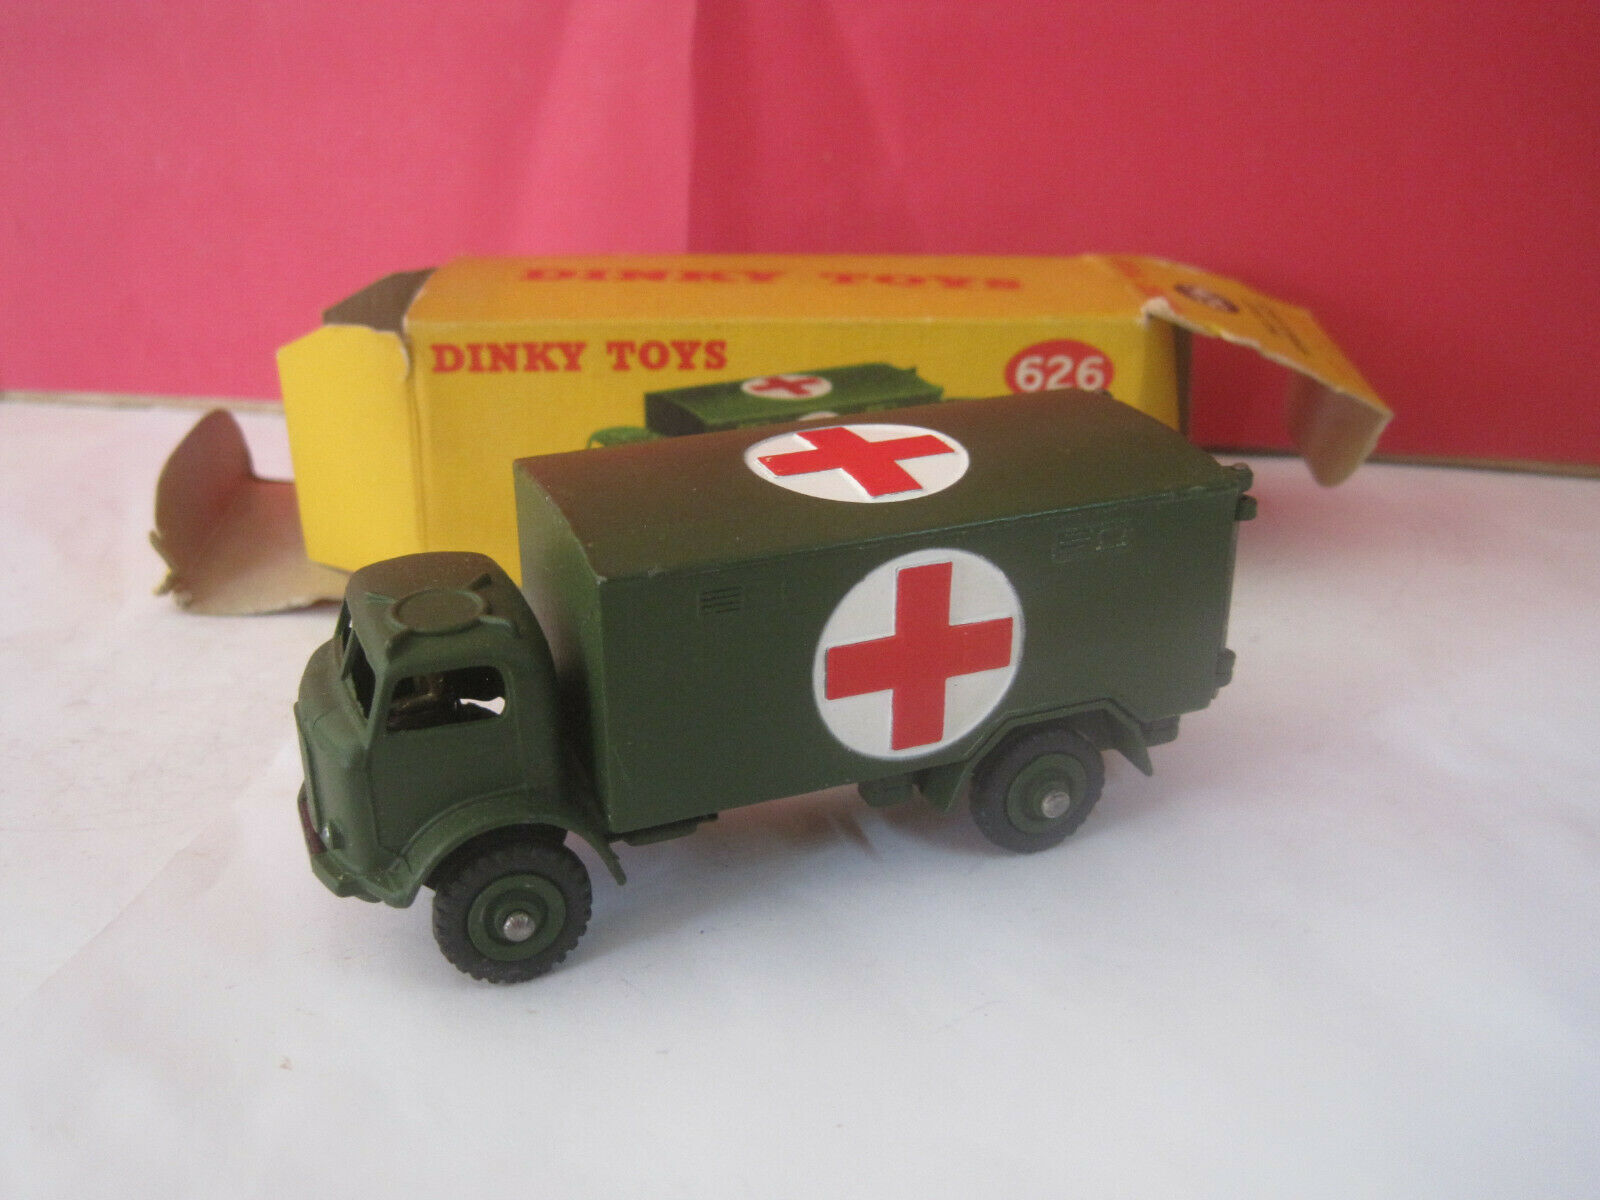 DINKY TOYS GB SUPERBE CAMION MILITAIRE MILITARY AMBULANCE NEUF BOITE  626